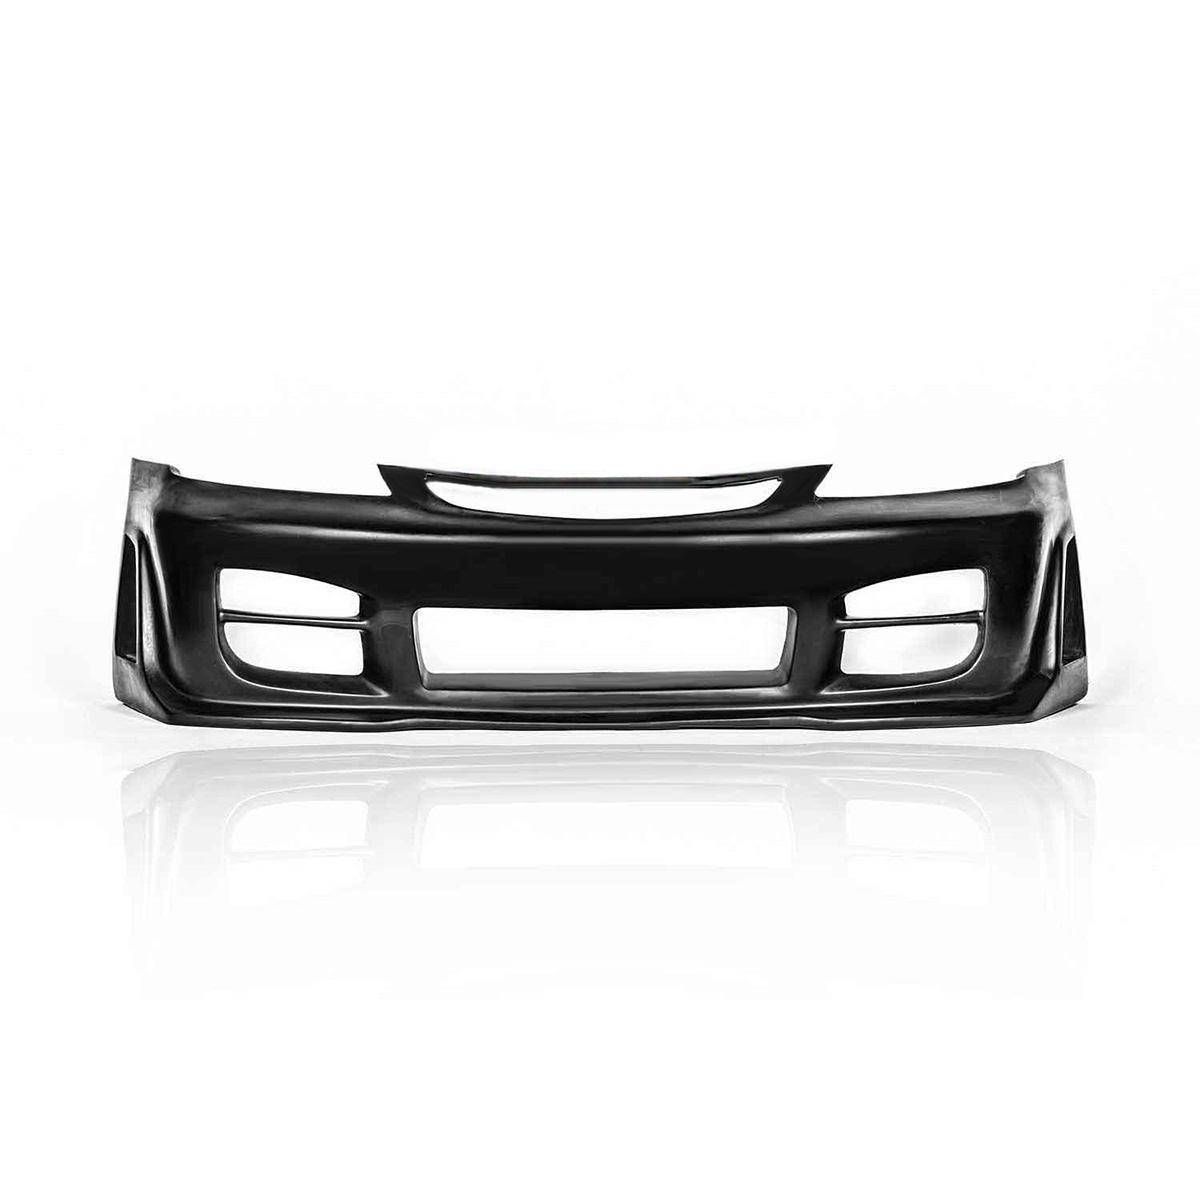 Honda Civic ALL 2001-2003 R34 Style 1 Piece Polyurethane Front Bumper